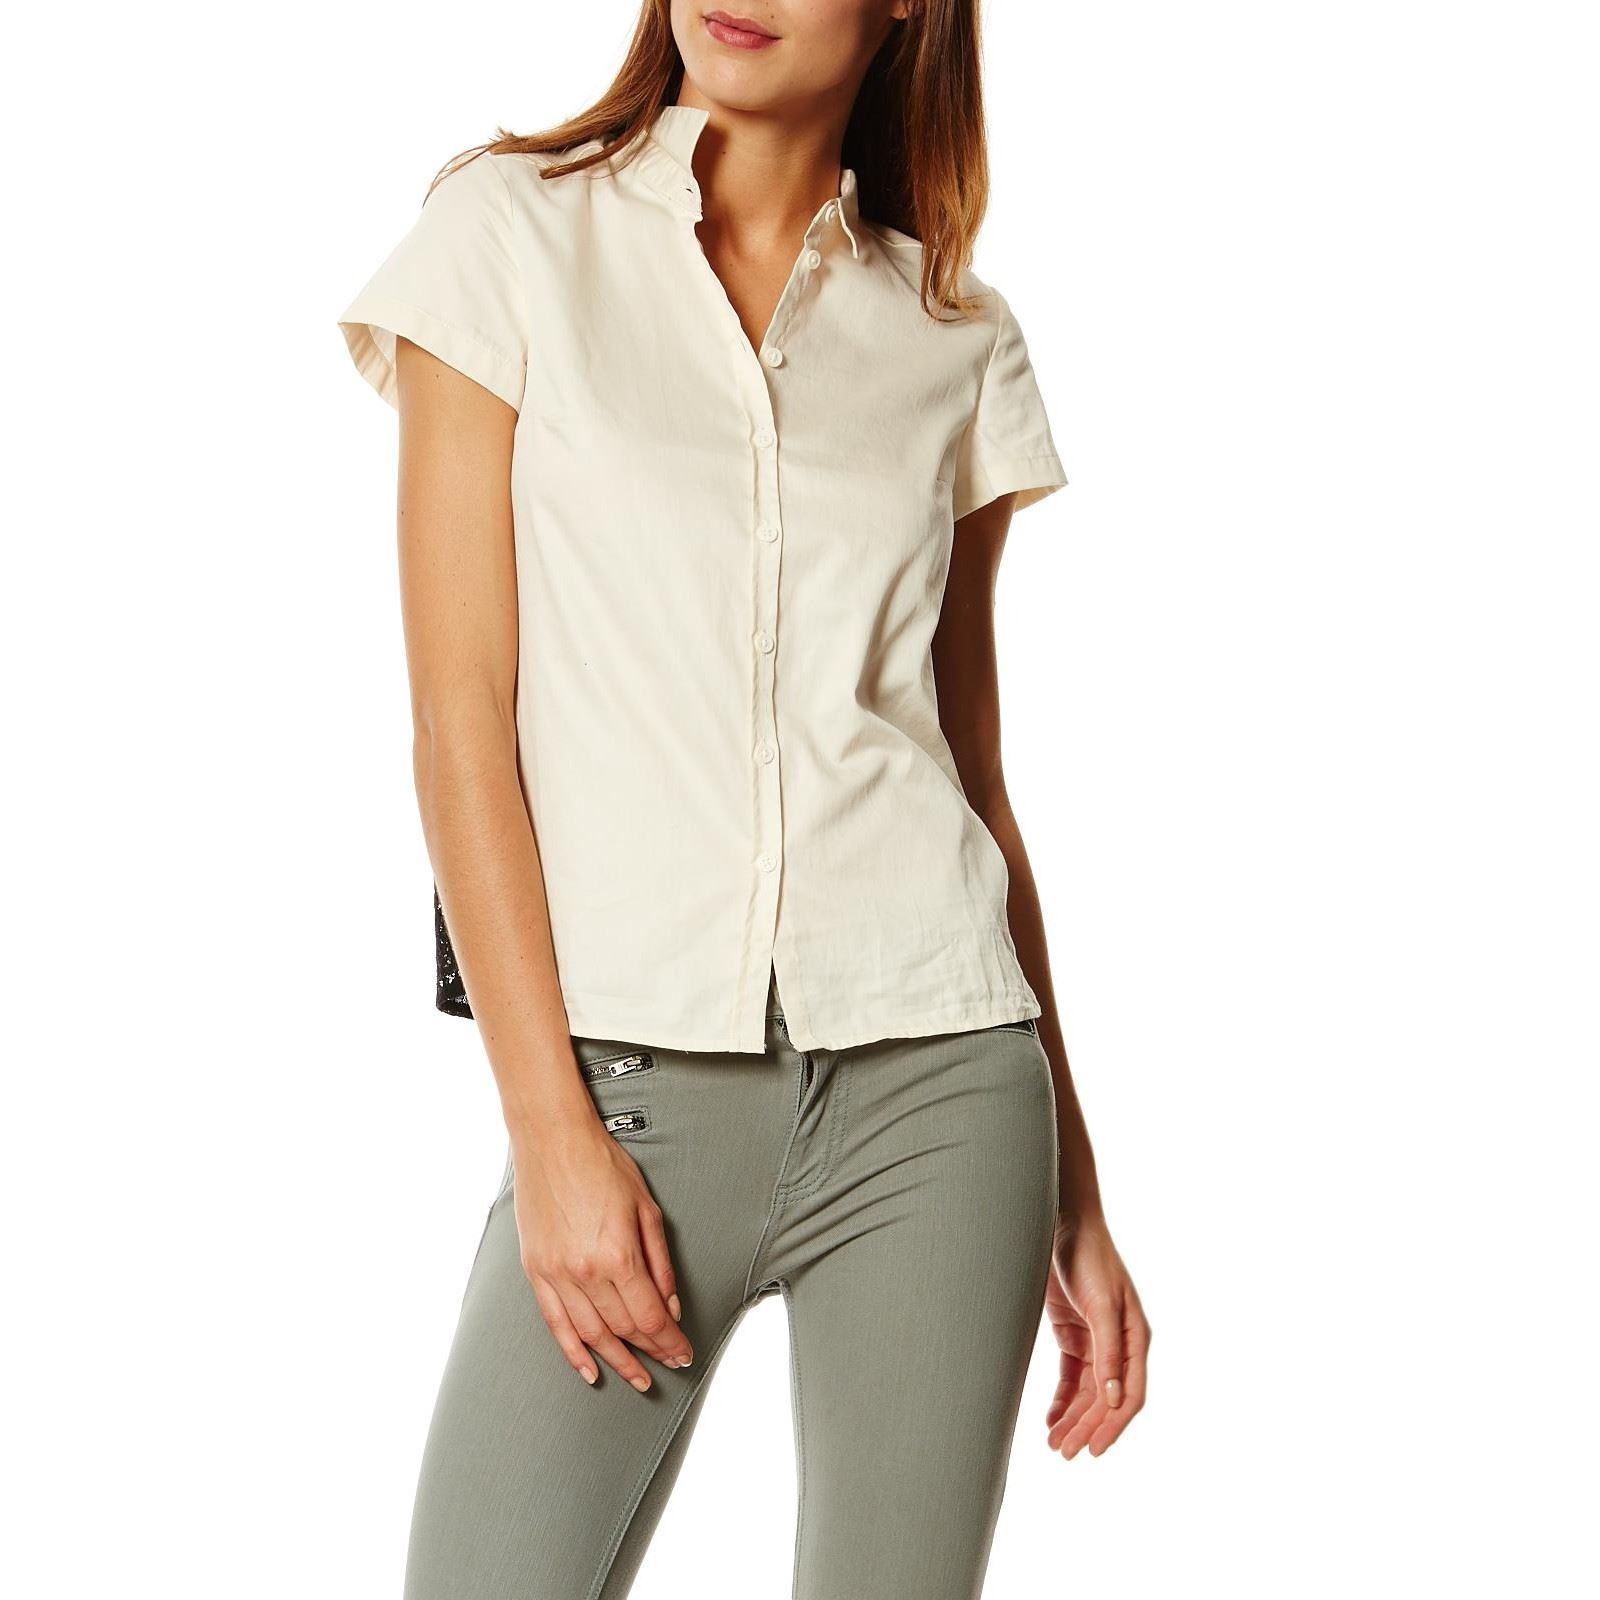 French Connection Chemise - ecru   BrandAlley af1a6945338a